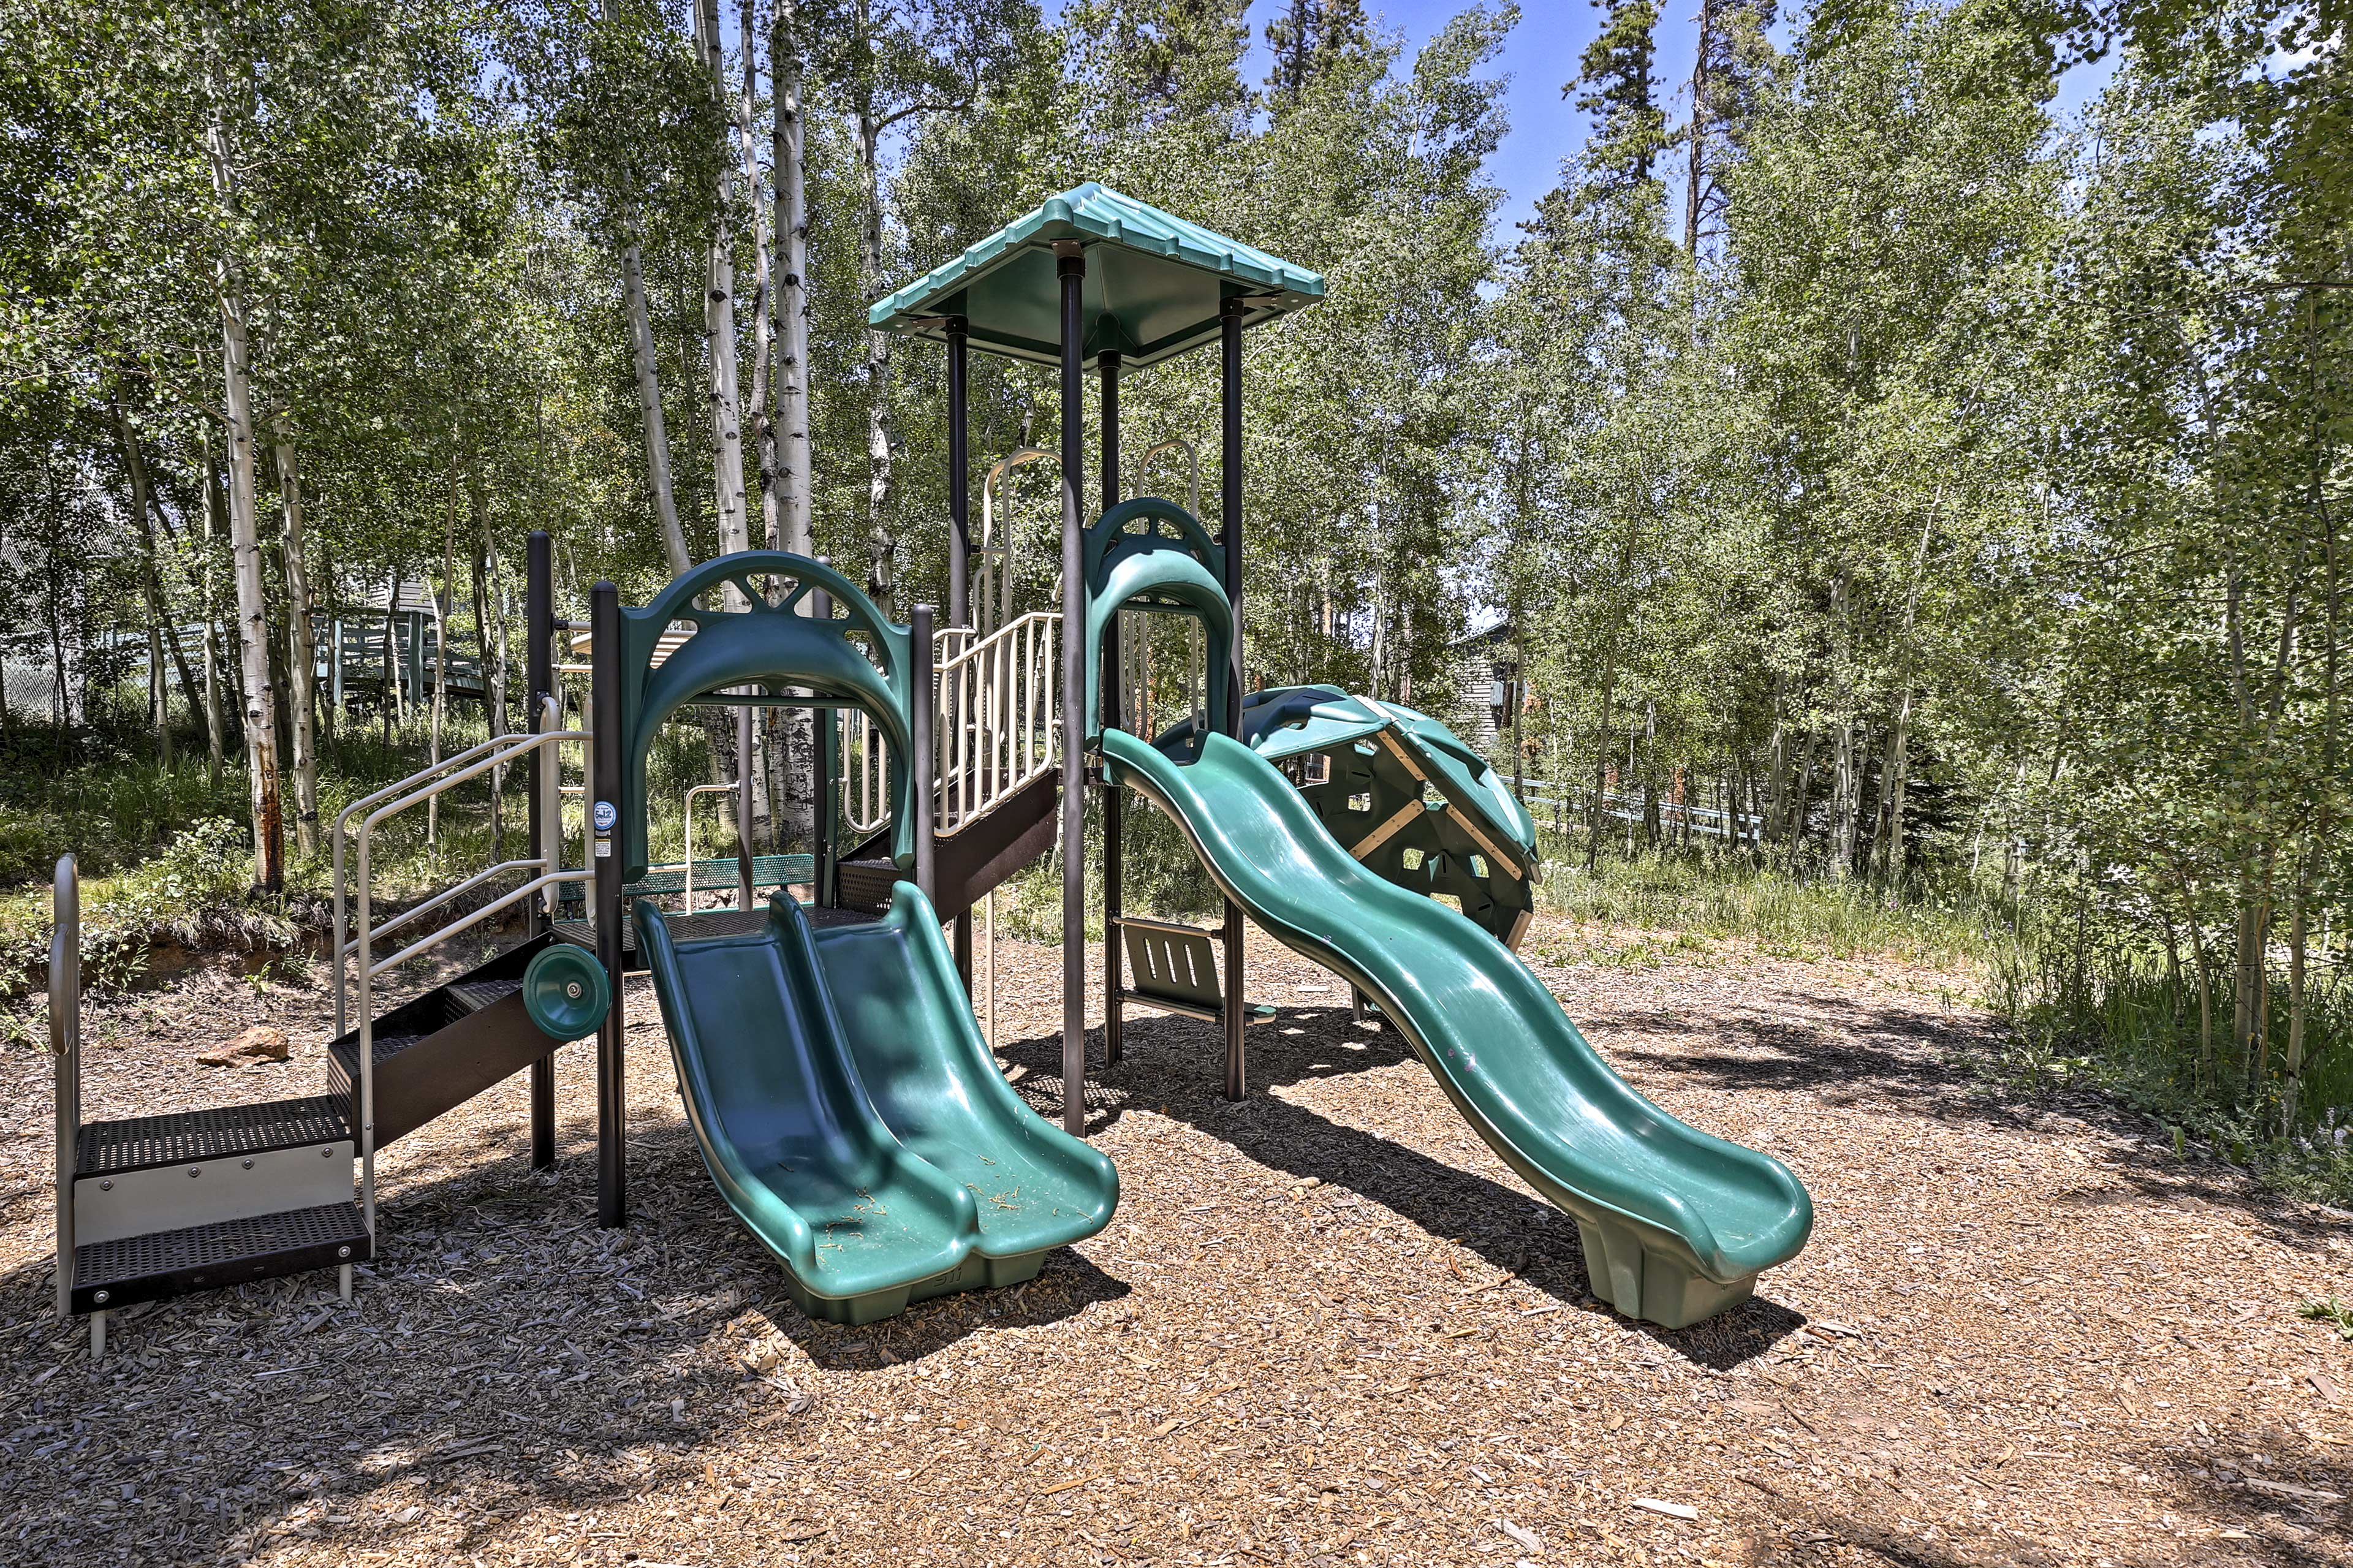 Let the kids enjoy themeselves on the playground.